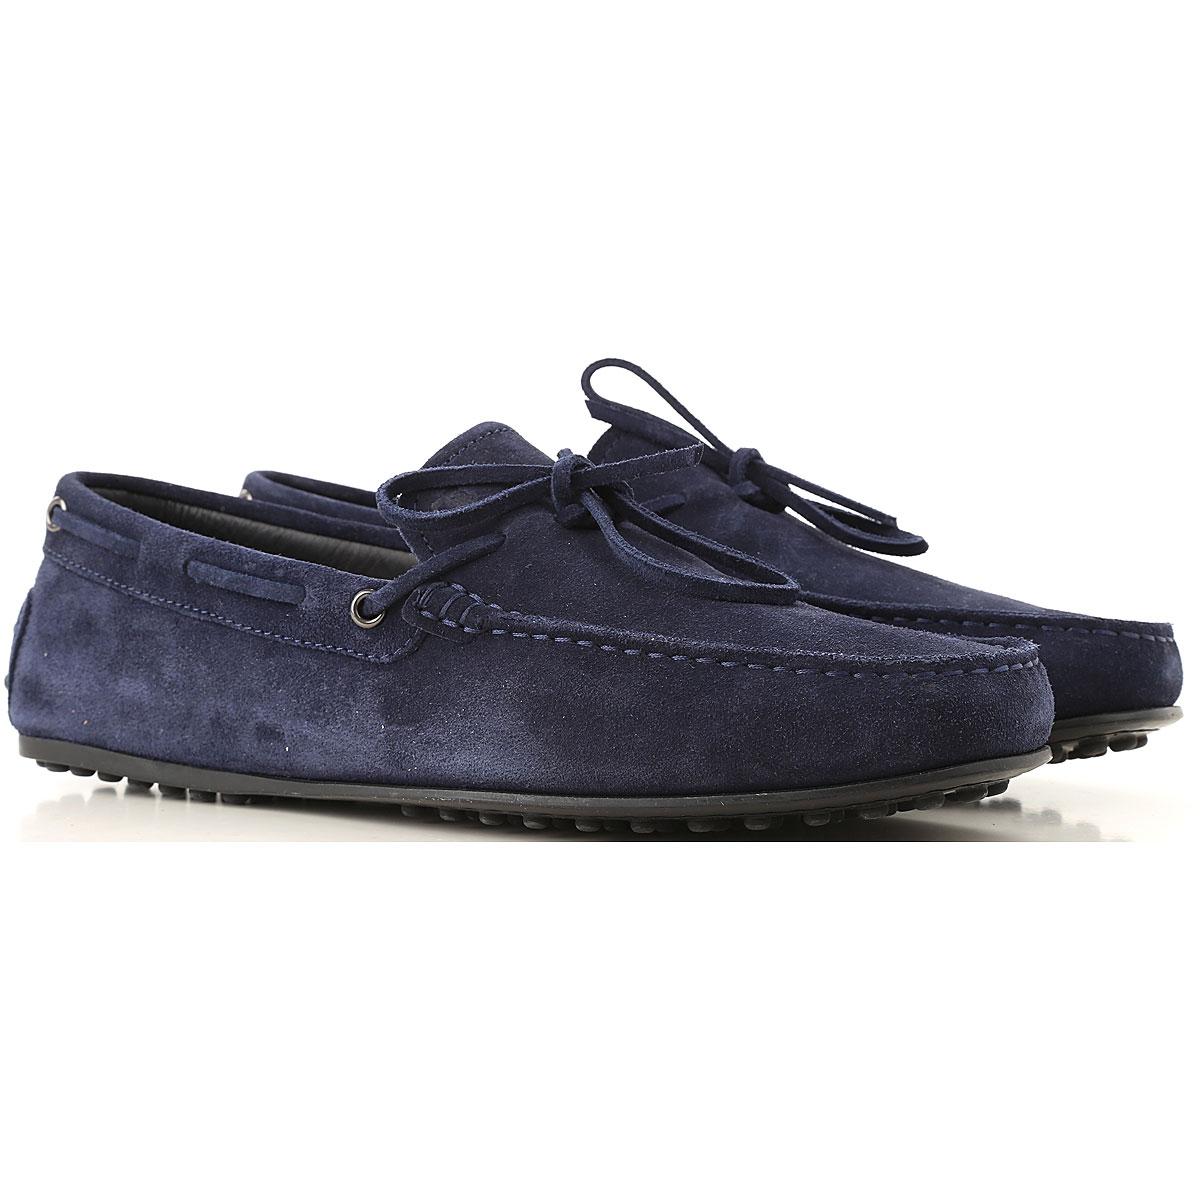 Tods Loafers for Men On Sale galaxy blue SE - GOOFASH